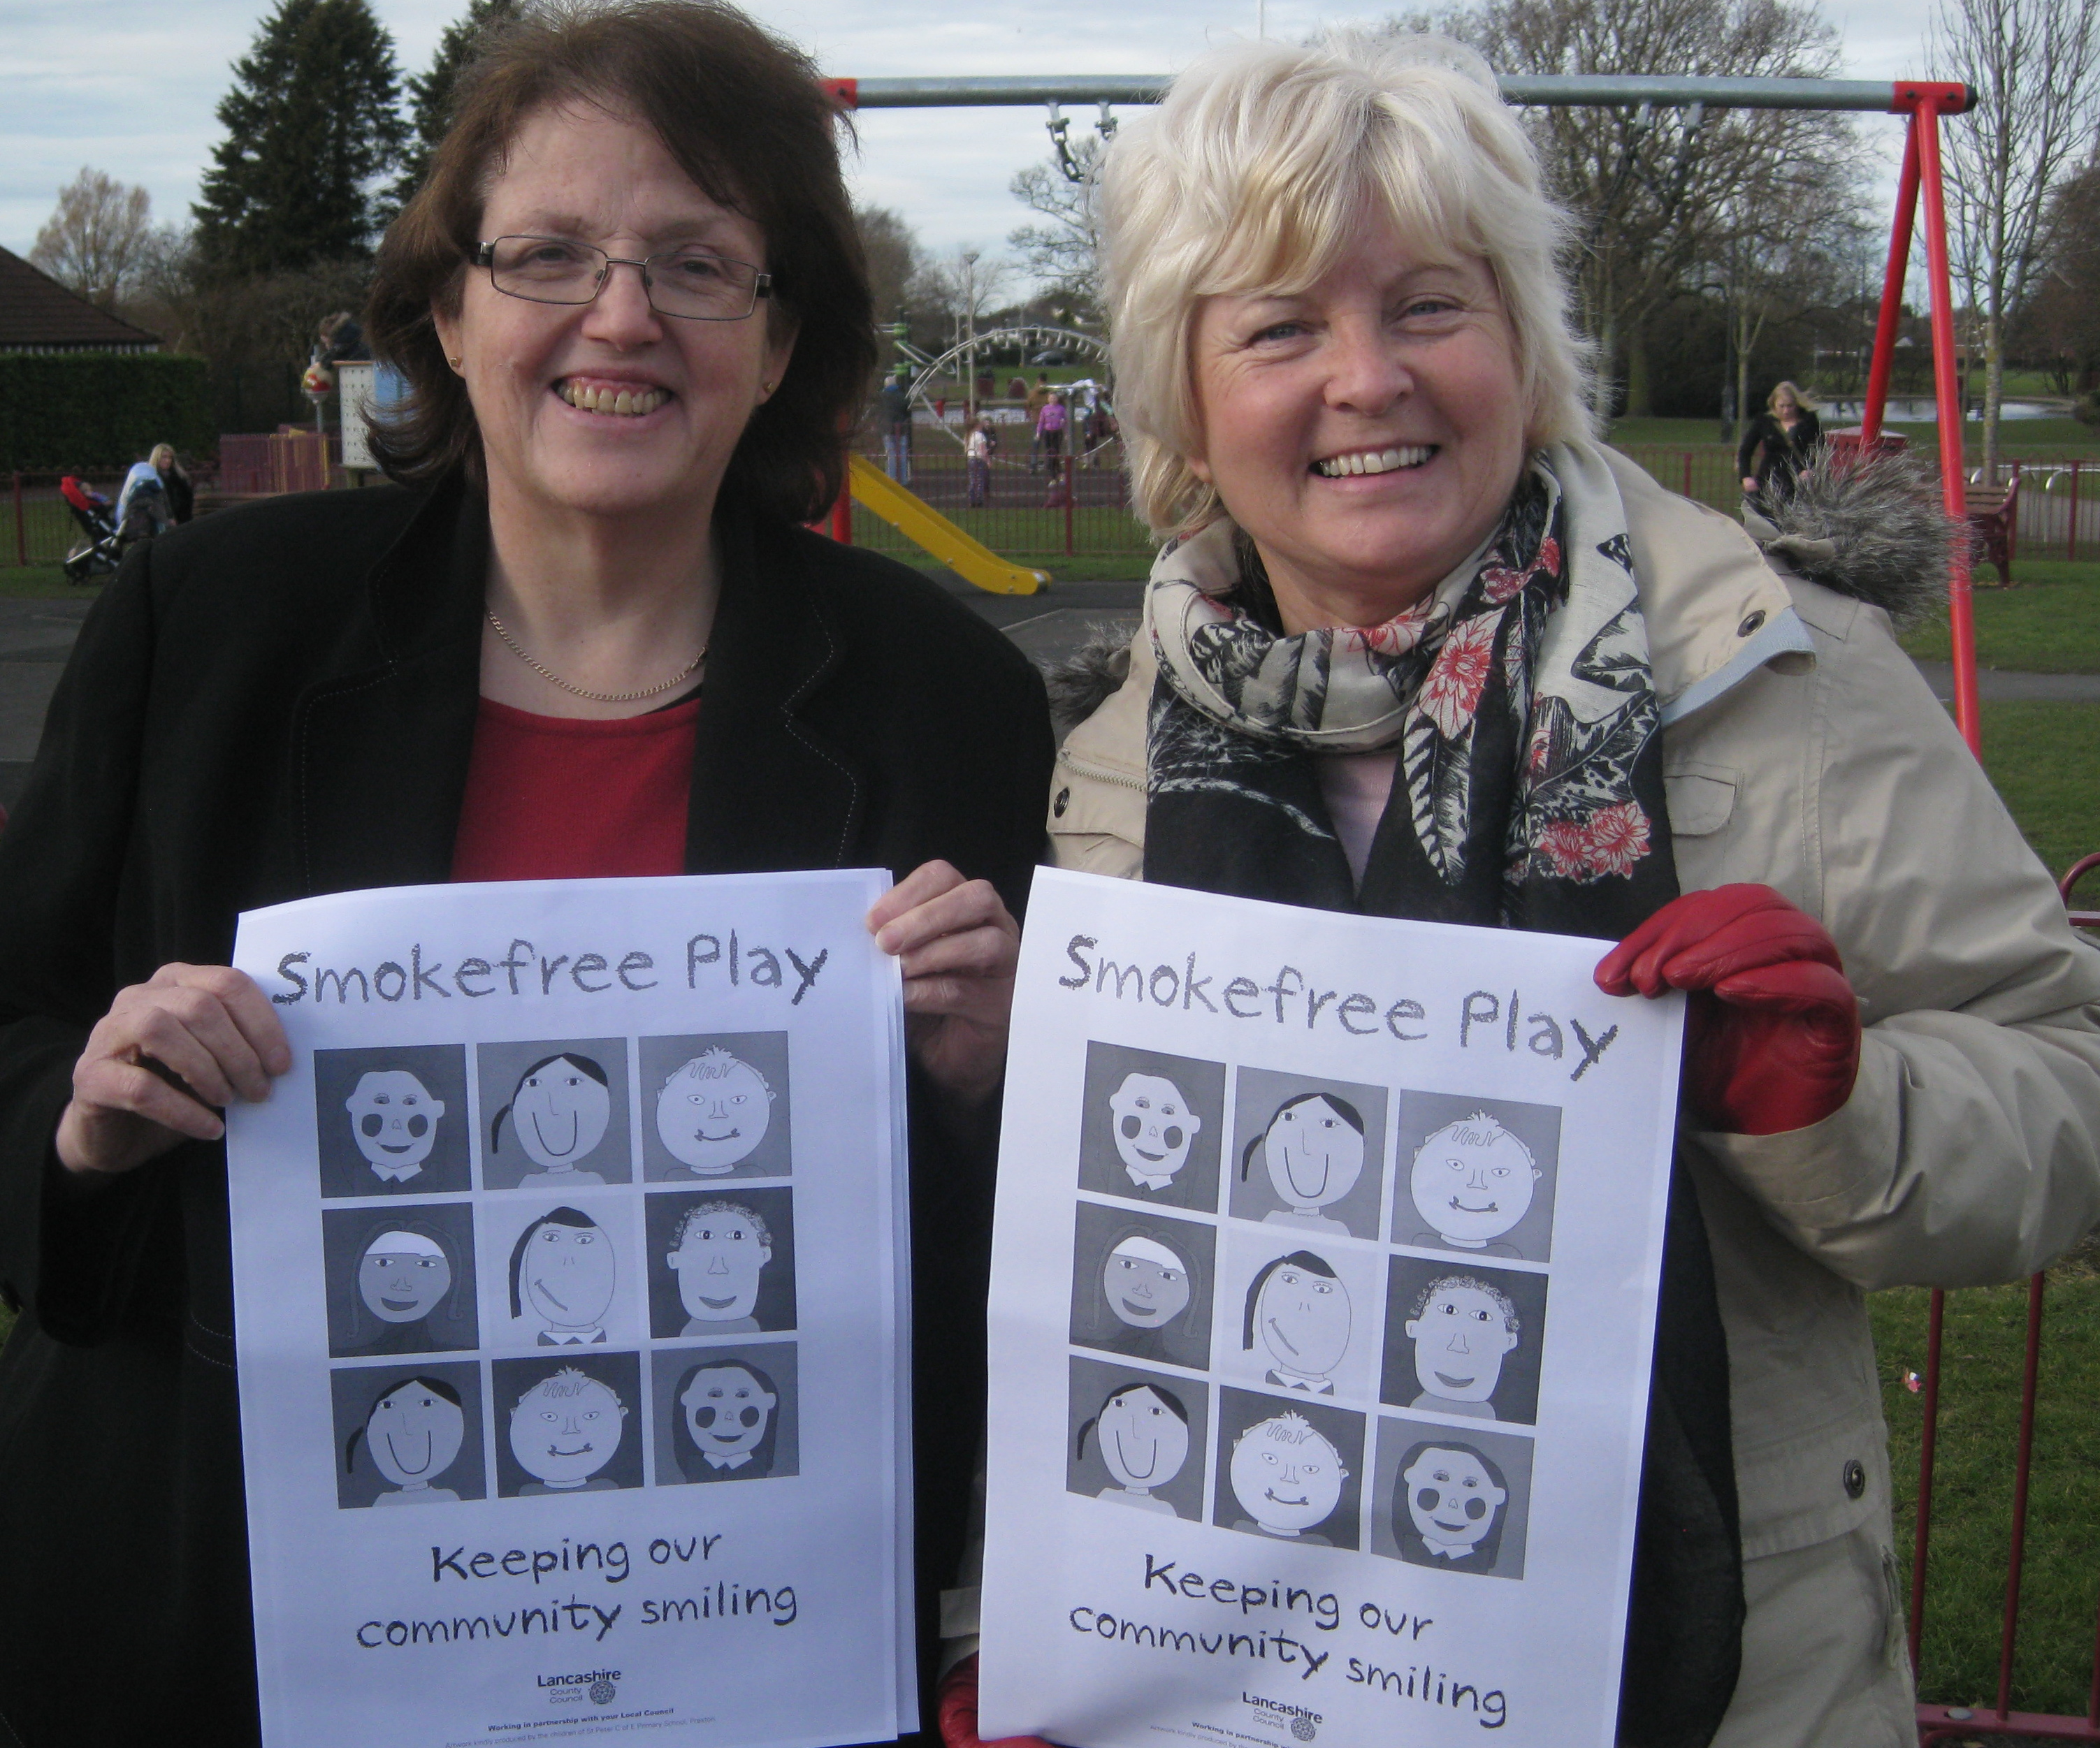 Rosie_Cooper_MP_and_Cllr_Nikki_Hennessy_at_a_West_Lancashire_play_area.JPG